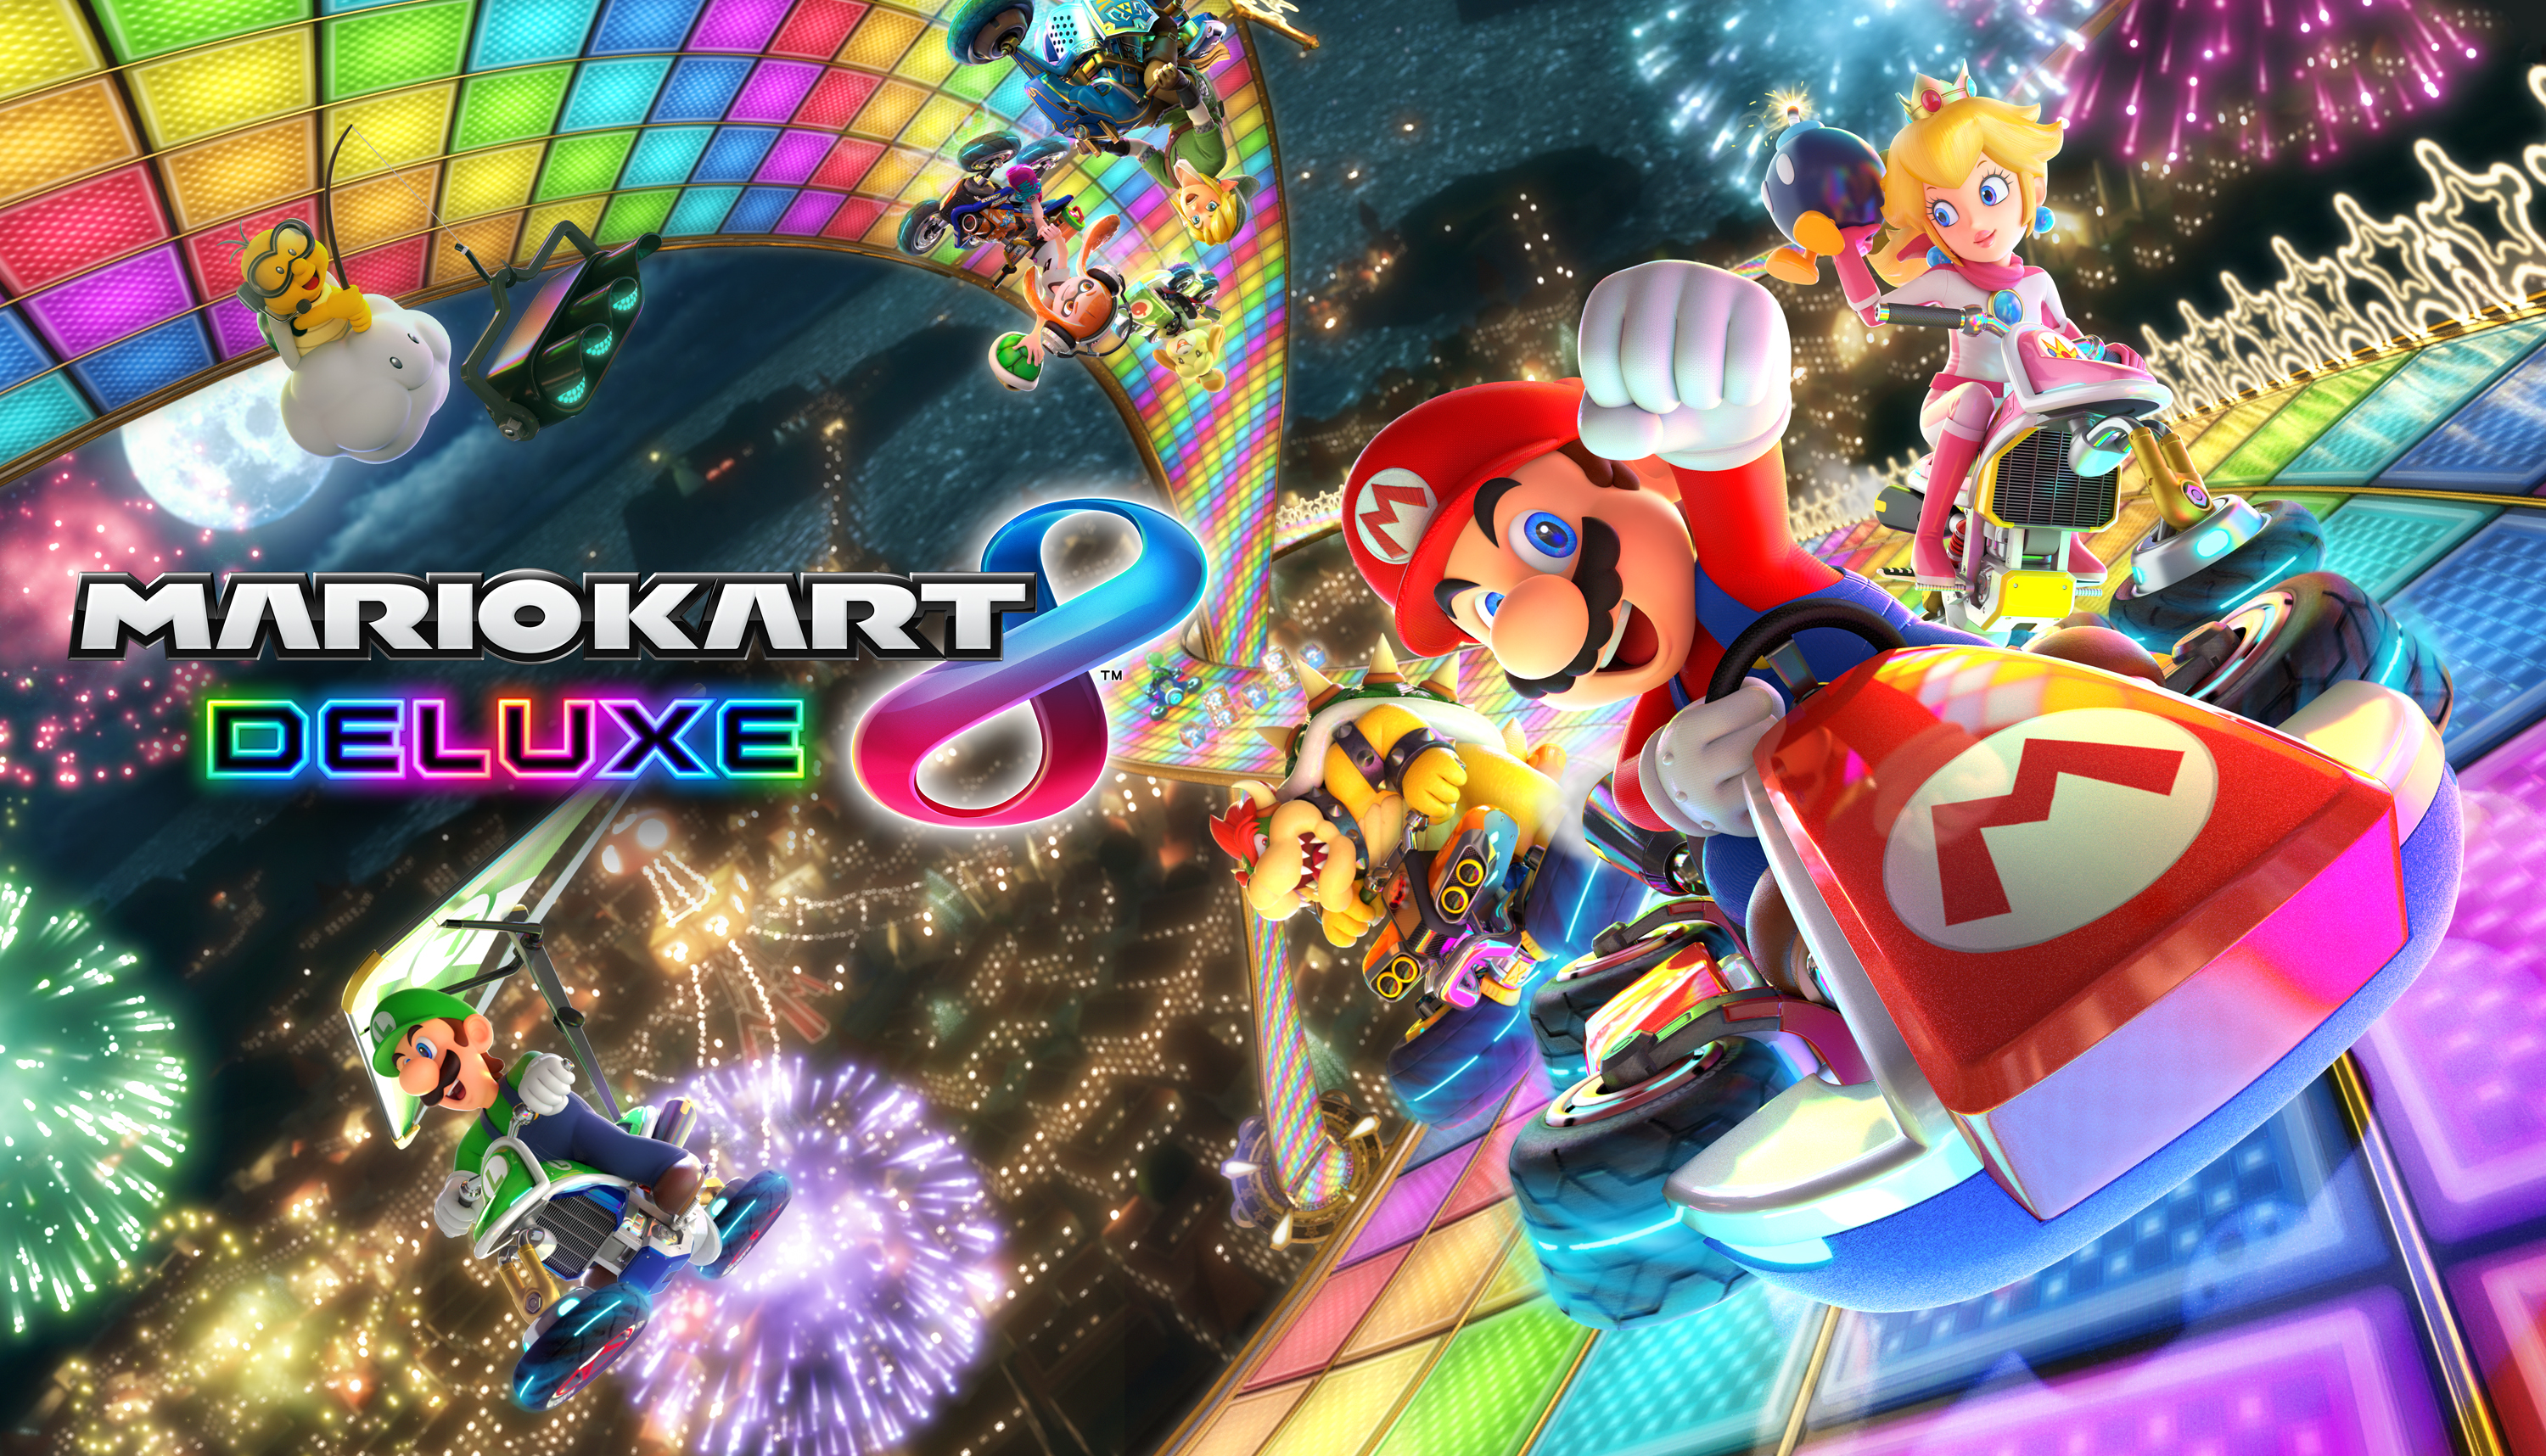 Mario Kart 8 Background: Mario Kart 8 Deluxe HD Wallpaper